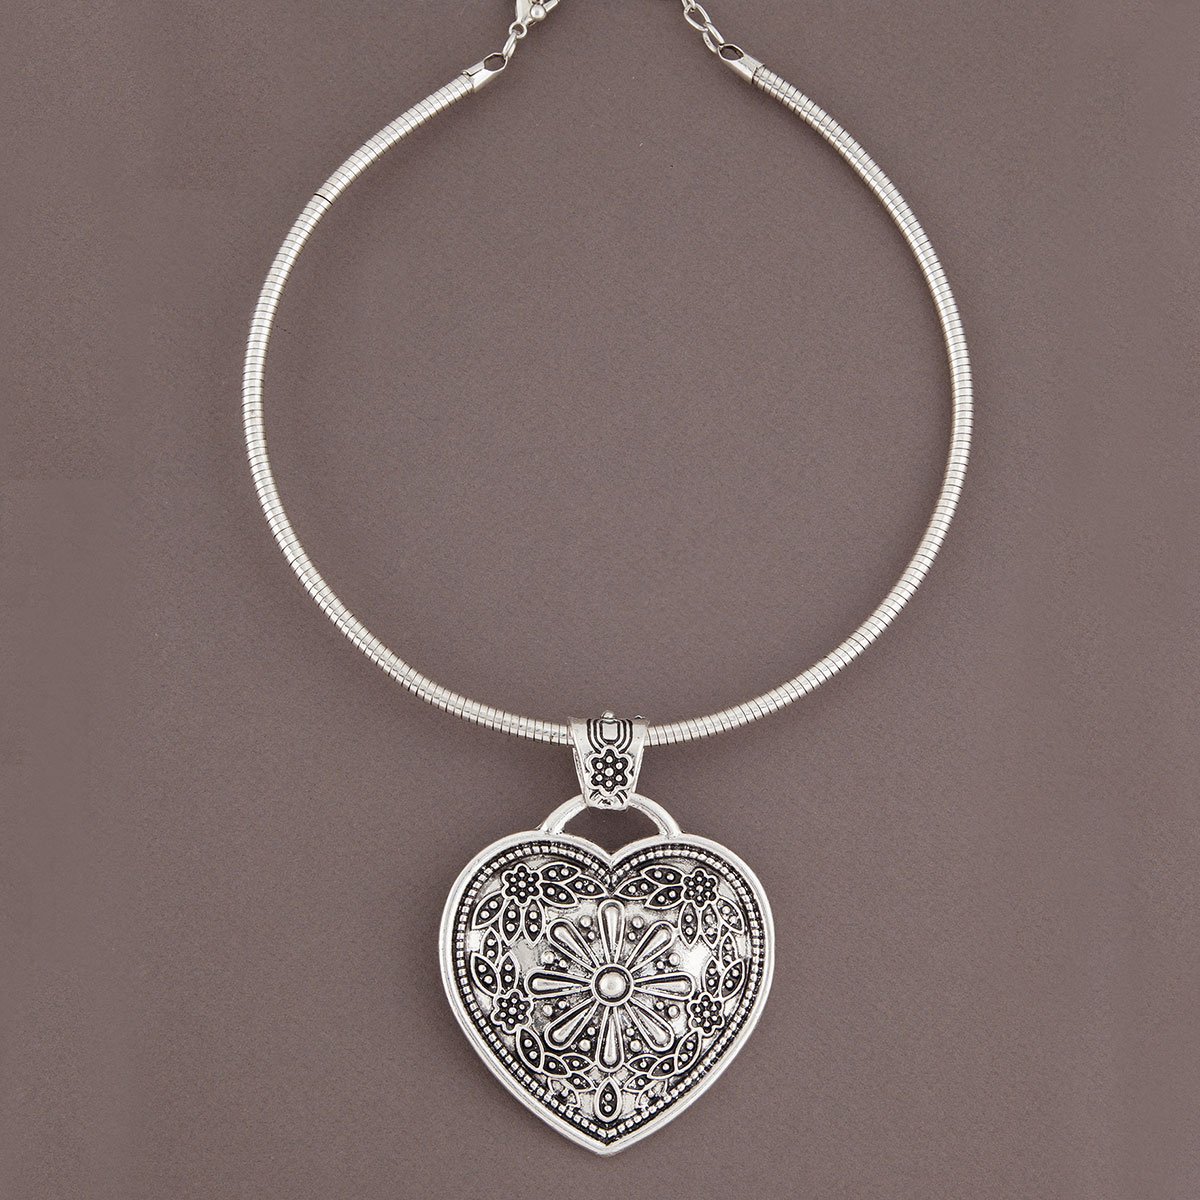 Antique Silver Heart Medallion Necklace